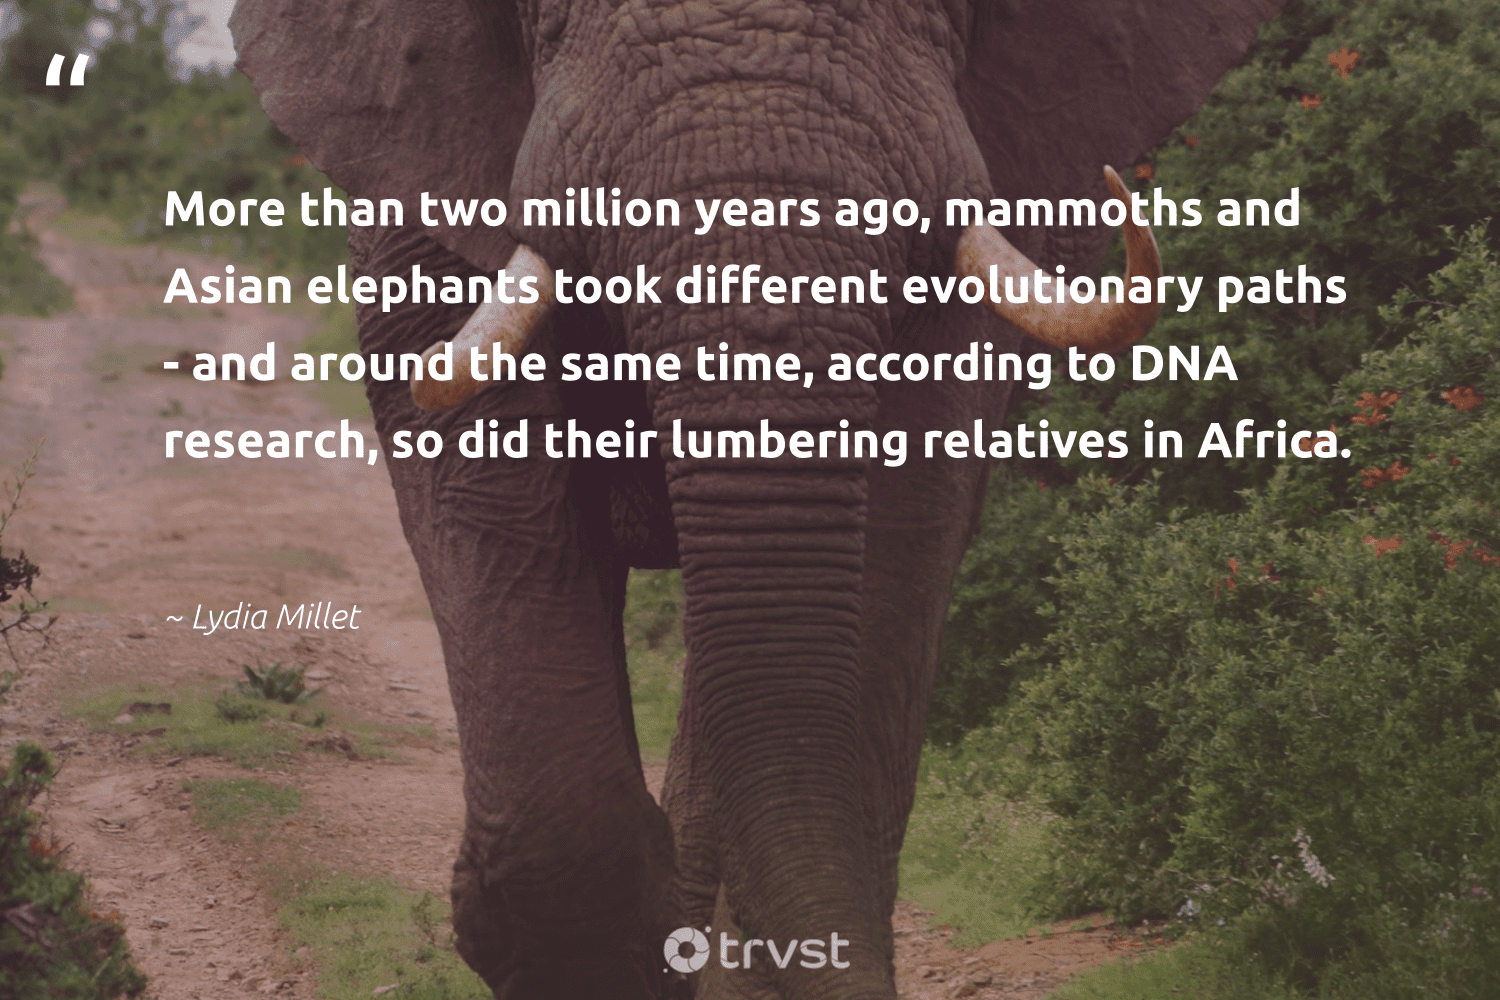 """""""More than two million years ago, mammoths and Asian elephants took different evolutionary paths - and around the same time, according to DNA research, so did their lumbering relatives in Africa.""""  - Lydia Millet #trvst #quotes #africa #research #elephants #science #mammals #forscience #collectiveaction #biology #savetheelephants #geology"""